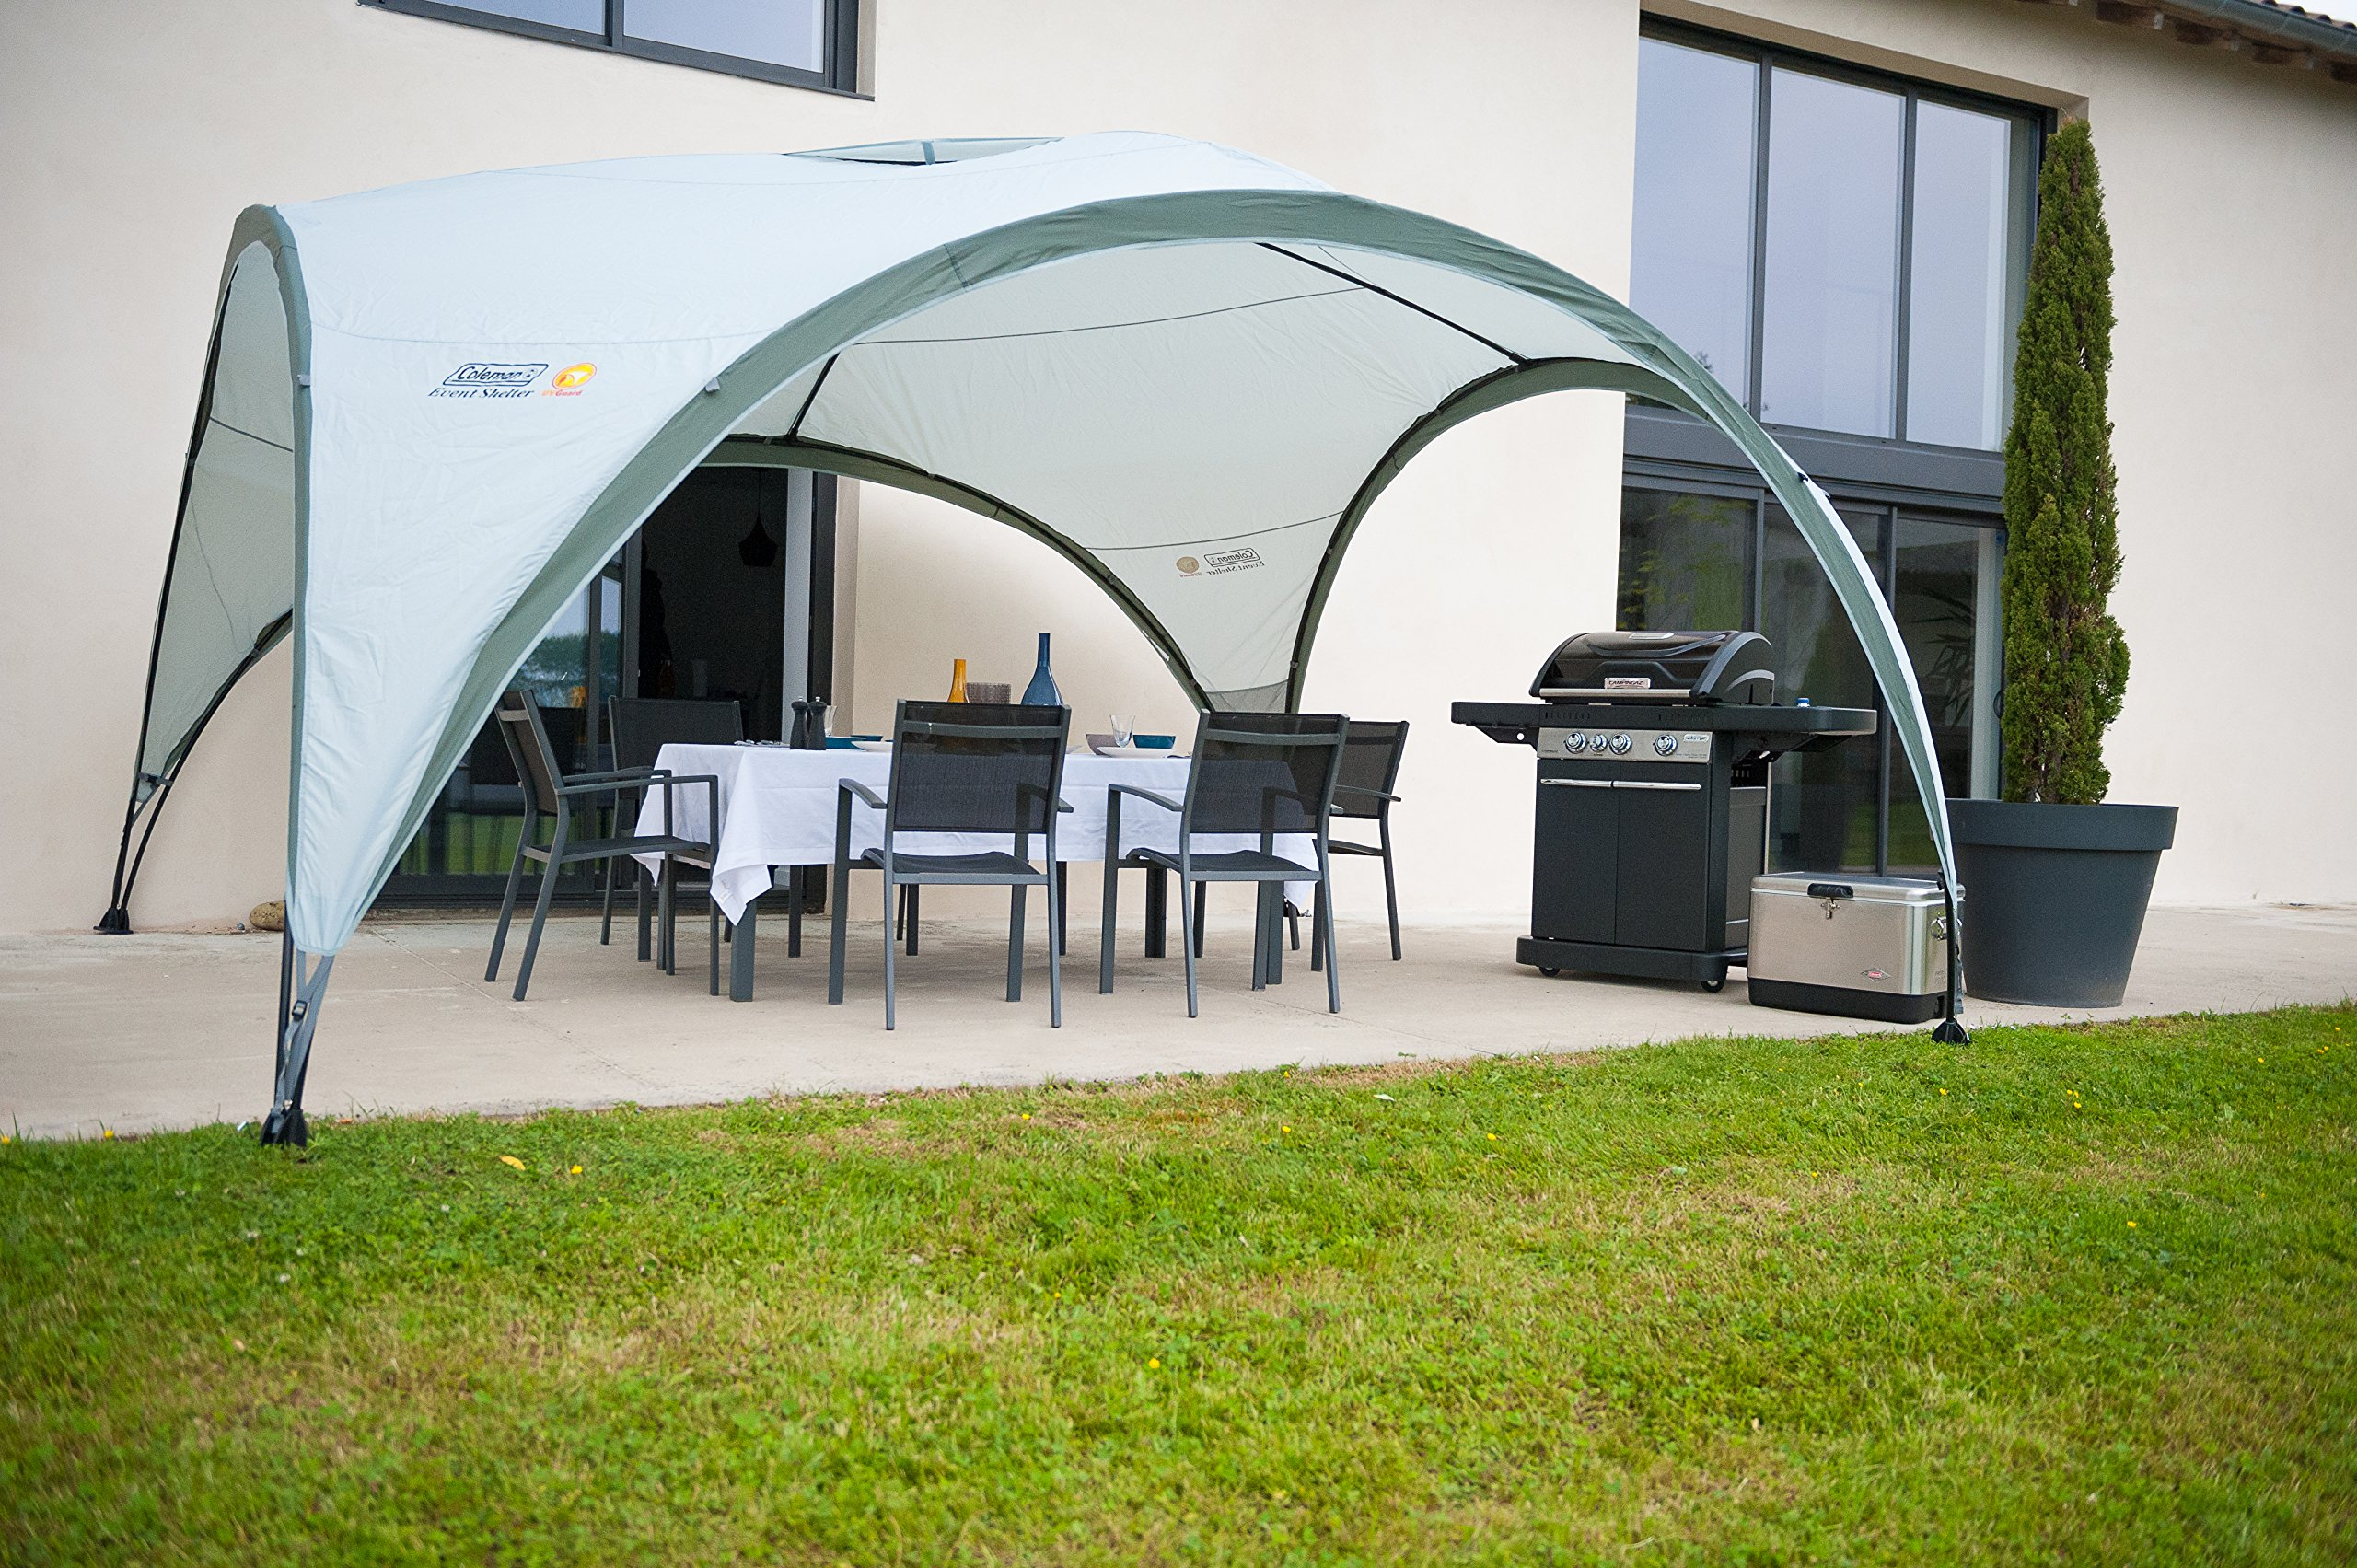 Coleman Gazebo Event Shelter for Festivals, Garden and Camping, sturdy steel poles construction, large Event tent, portable sun shelter with sun protection SPF 50+ 7